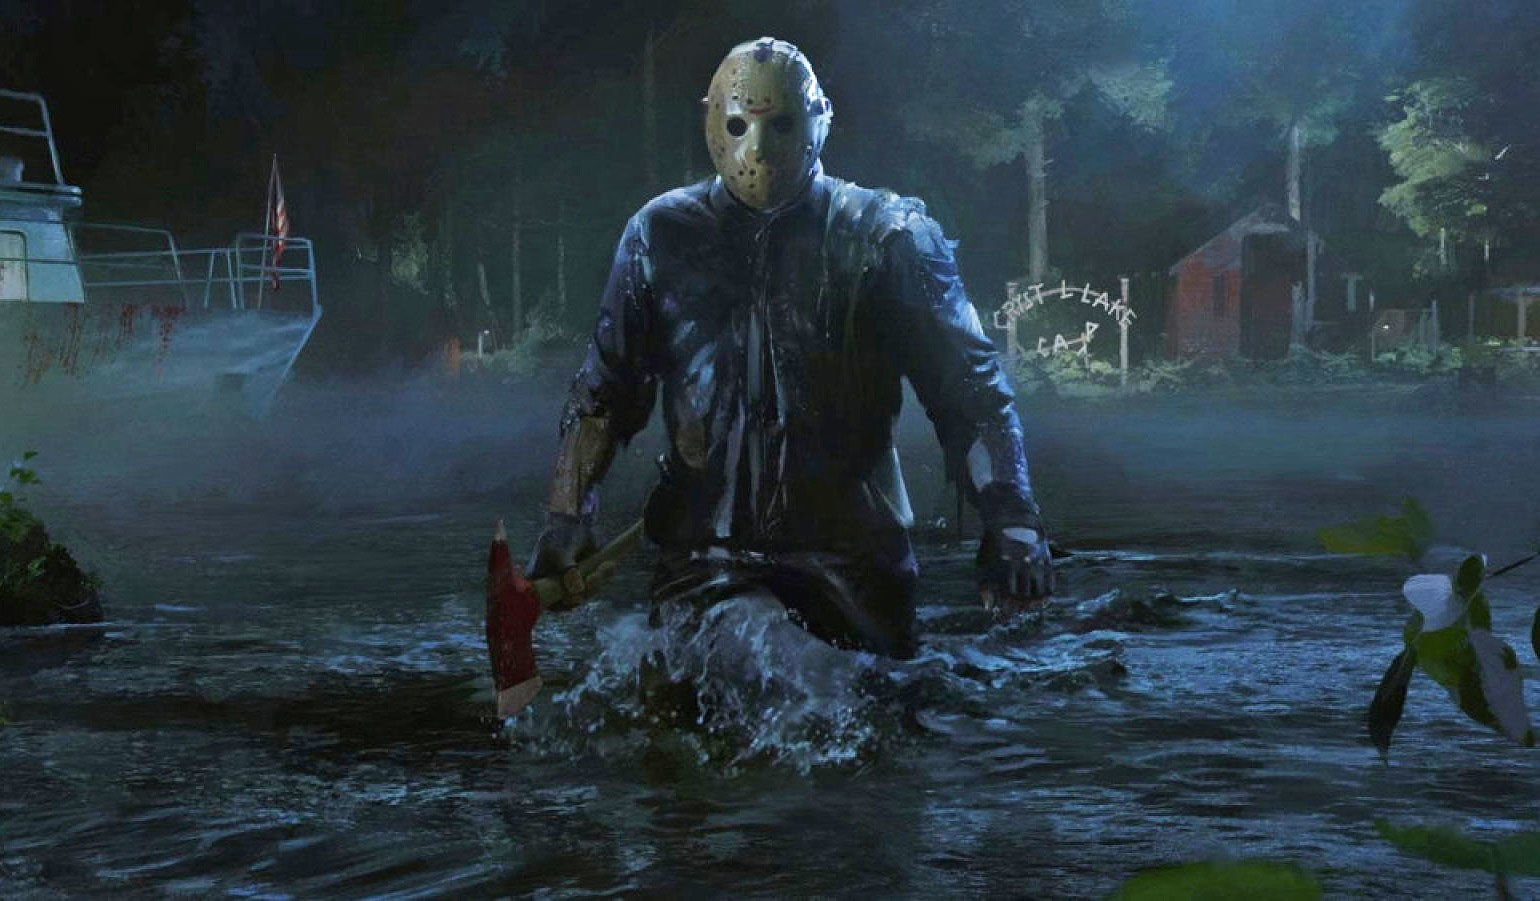 Friday The 13th: The Game will close its dedicated servers after one final patch